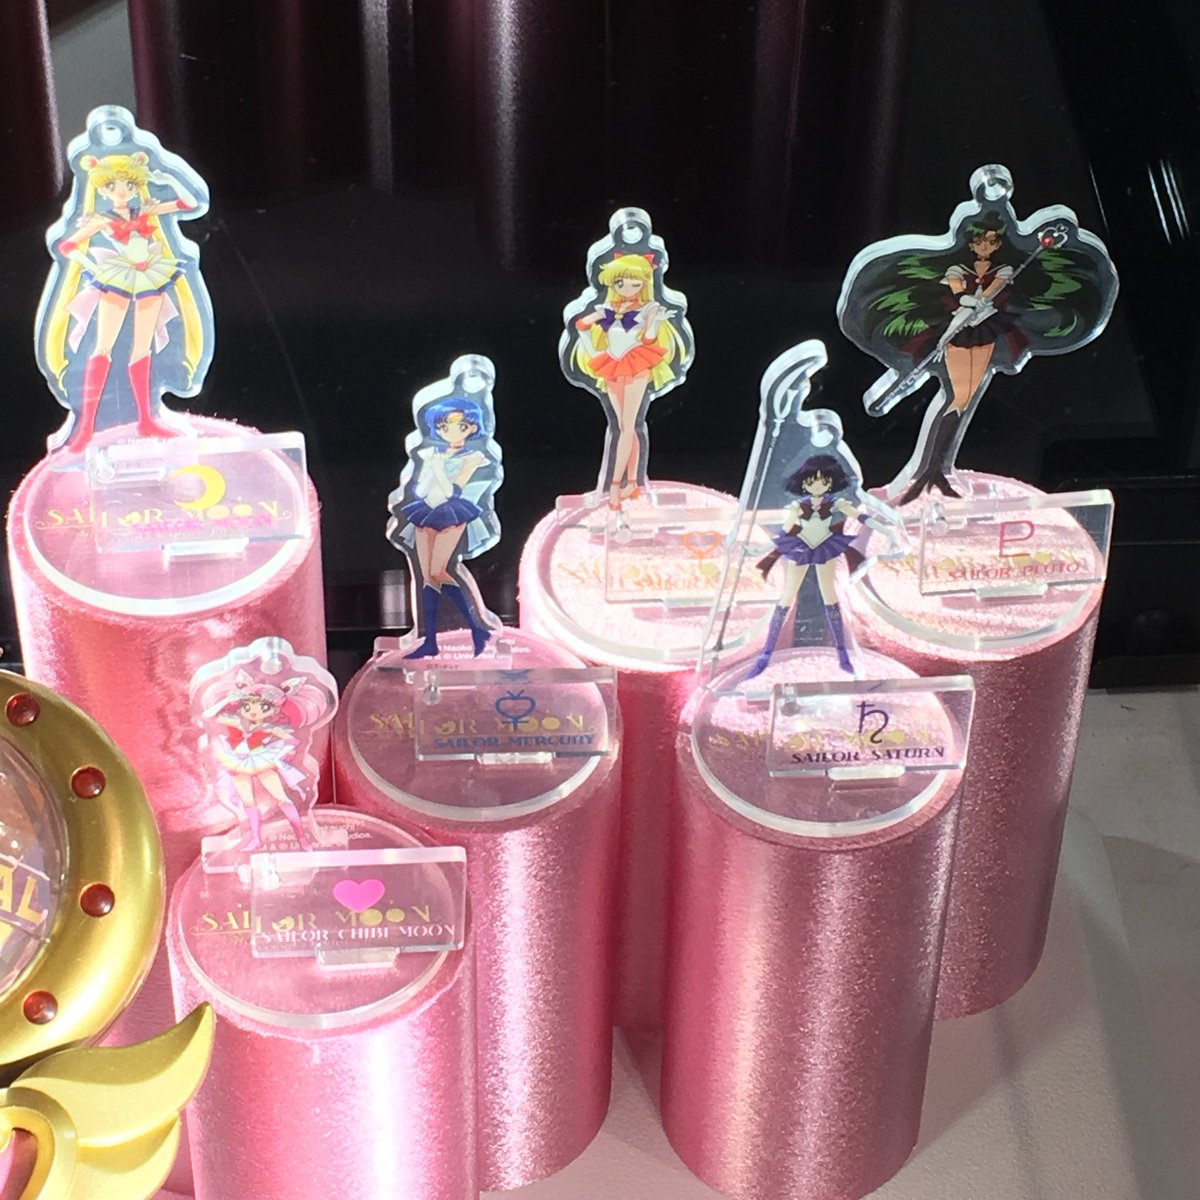 [News] Universal Studios Japan Sailor Moon Attraction DUw8RHPU0AAgPrm